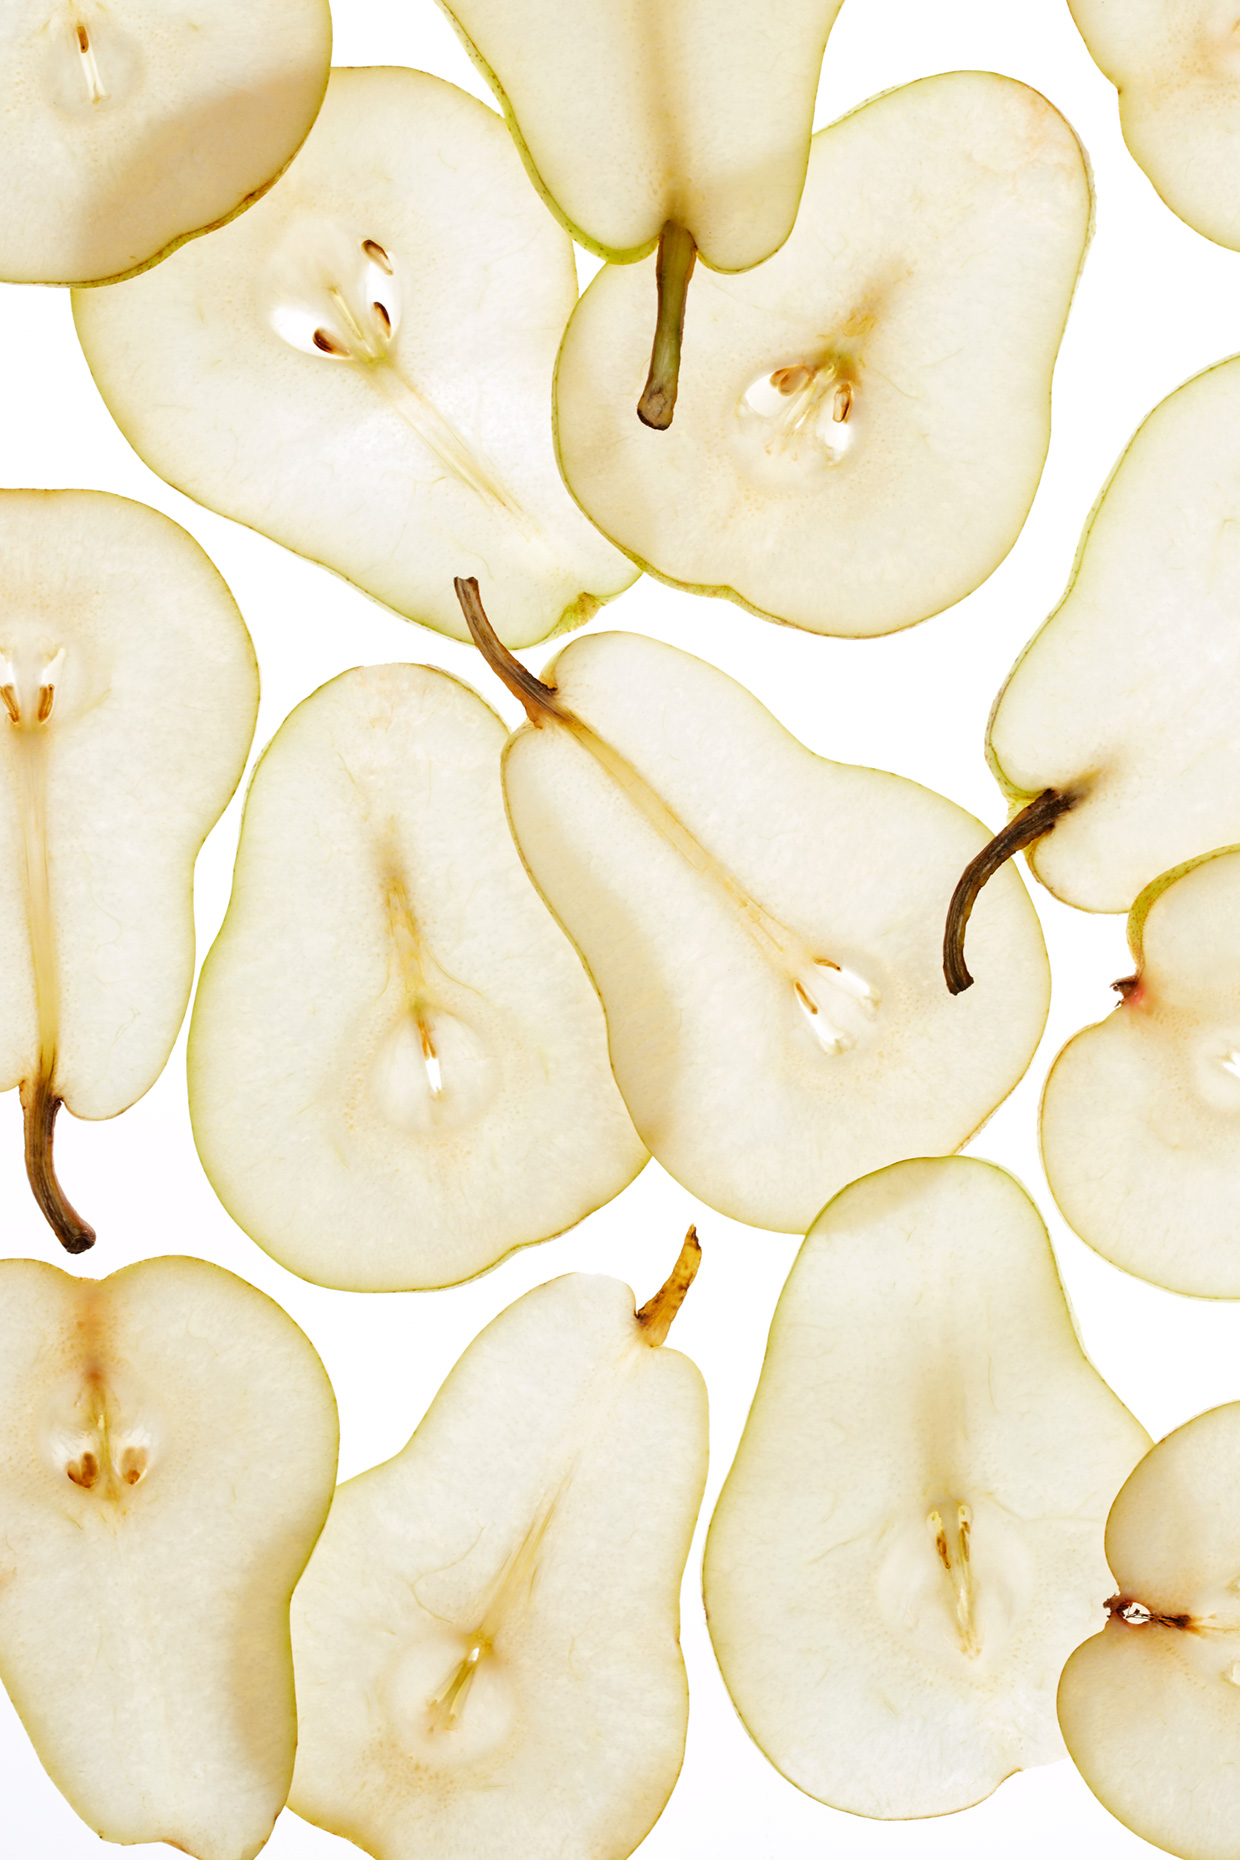 teri_lyn_fisher_pears